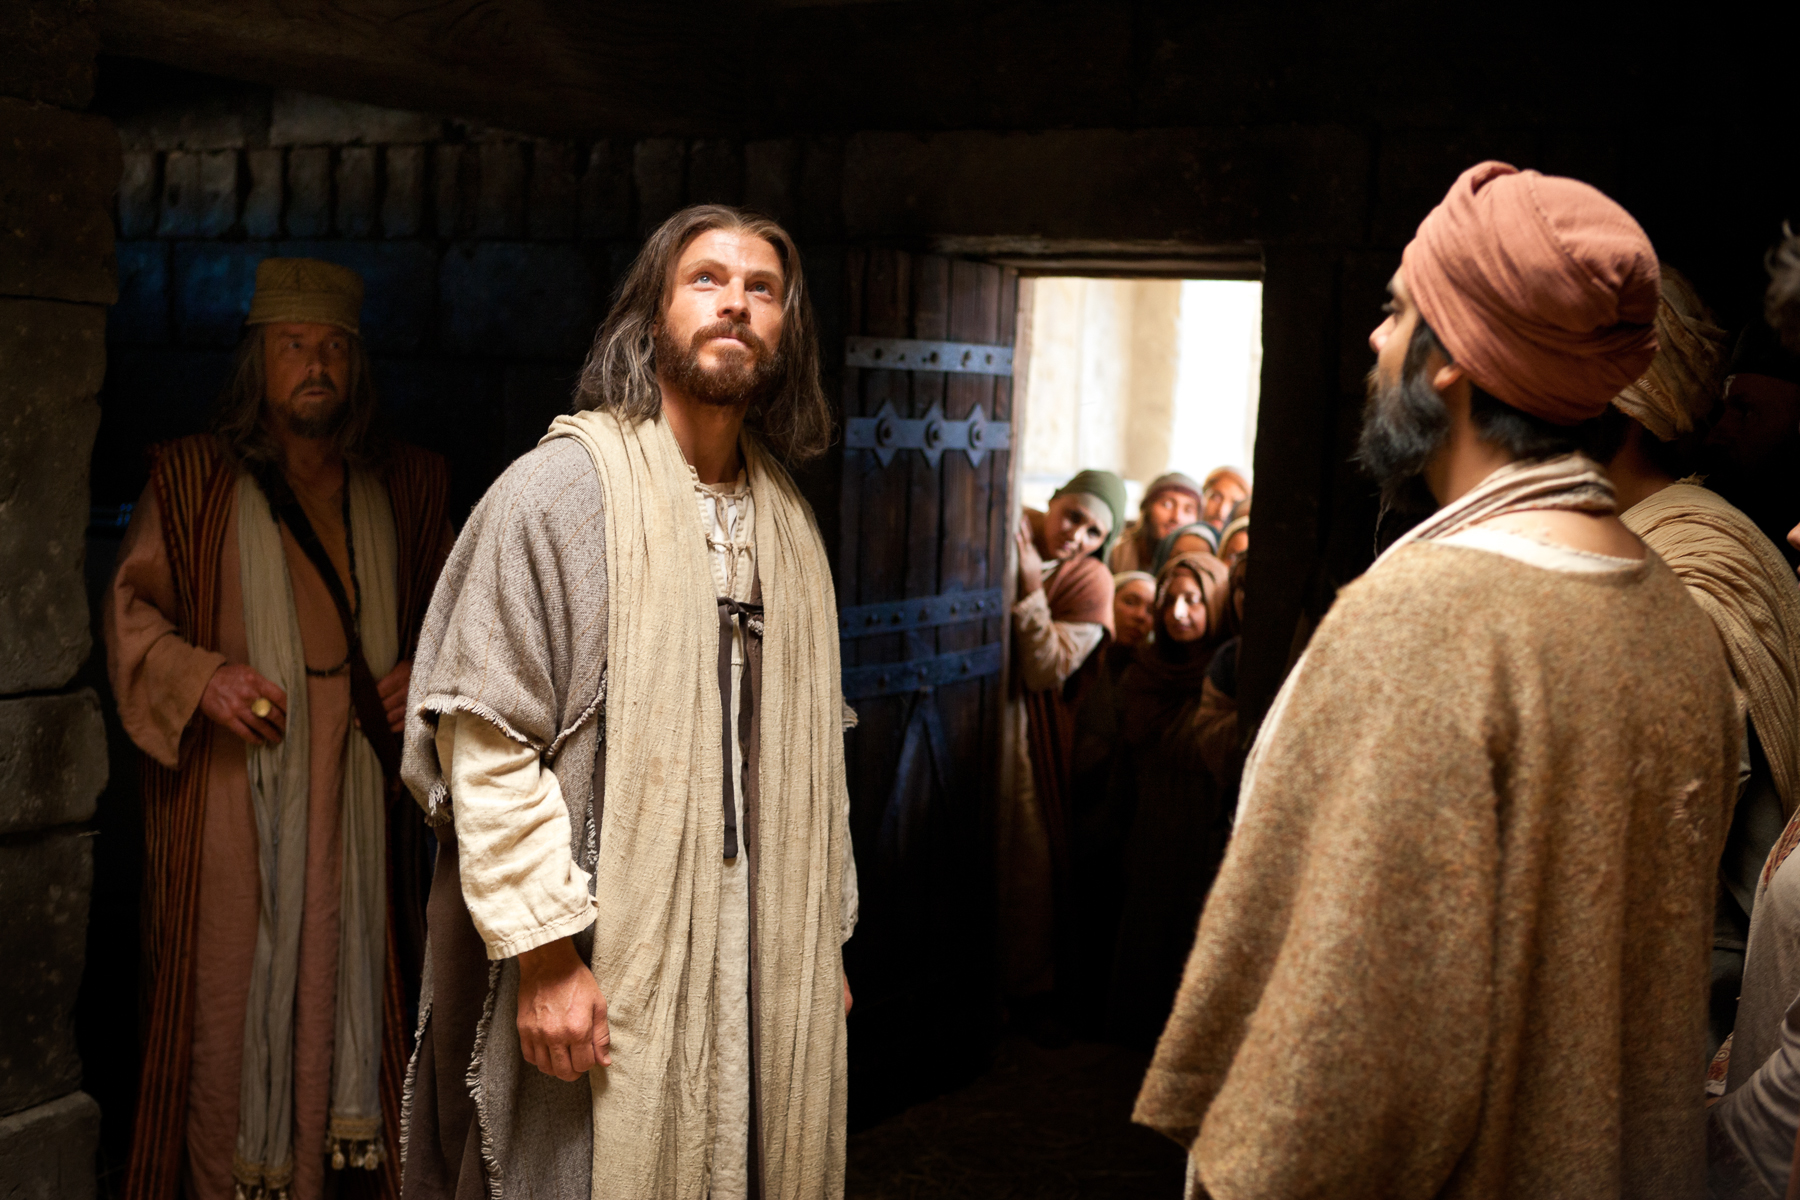 Jesus Forgives Sins and Heals a Man Stricken with Palsy - Jesus Forgives  Sins and Heals a Man Stricken with Palsy